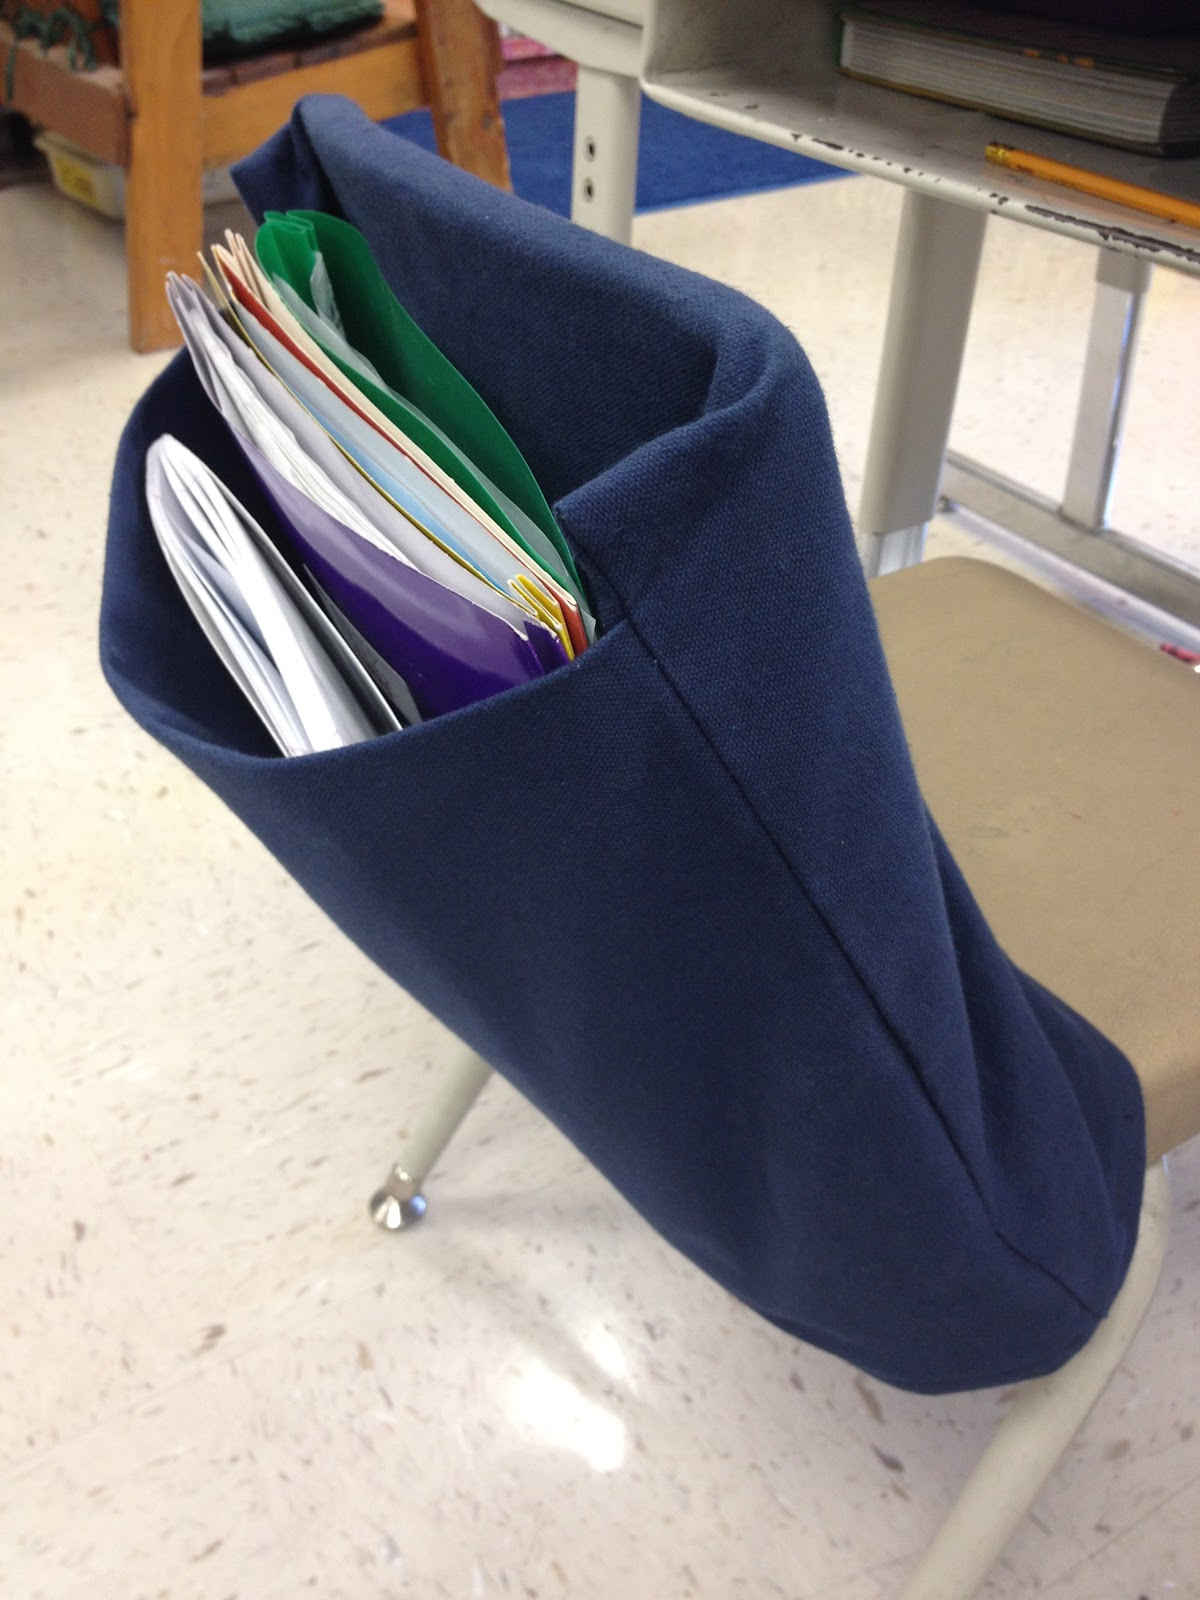 Classroom Chair Covers With Pocket Excercise Ball Totally Terrific In Texas Pics